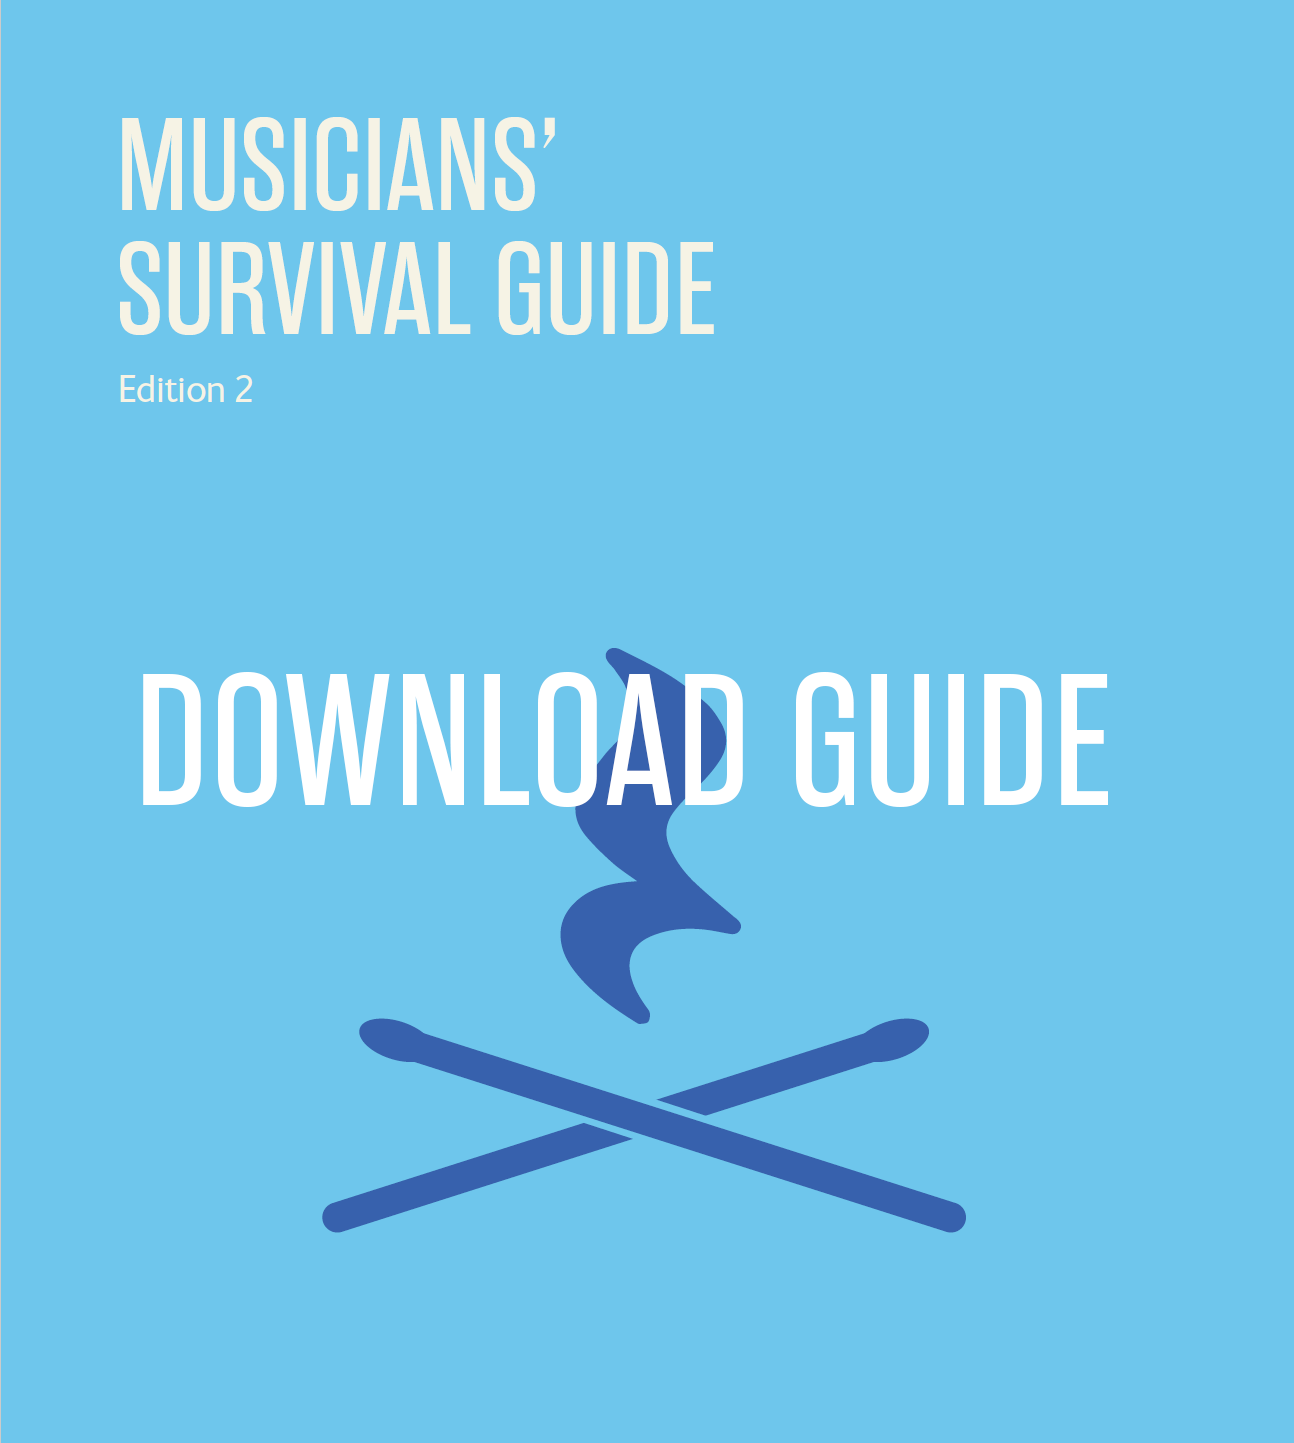 Musicians' Survival Guide - Edition 2 Download (PDF)